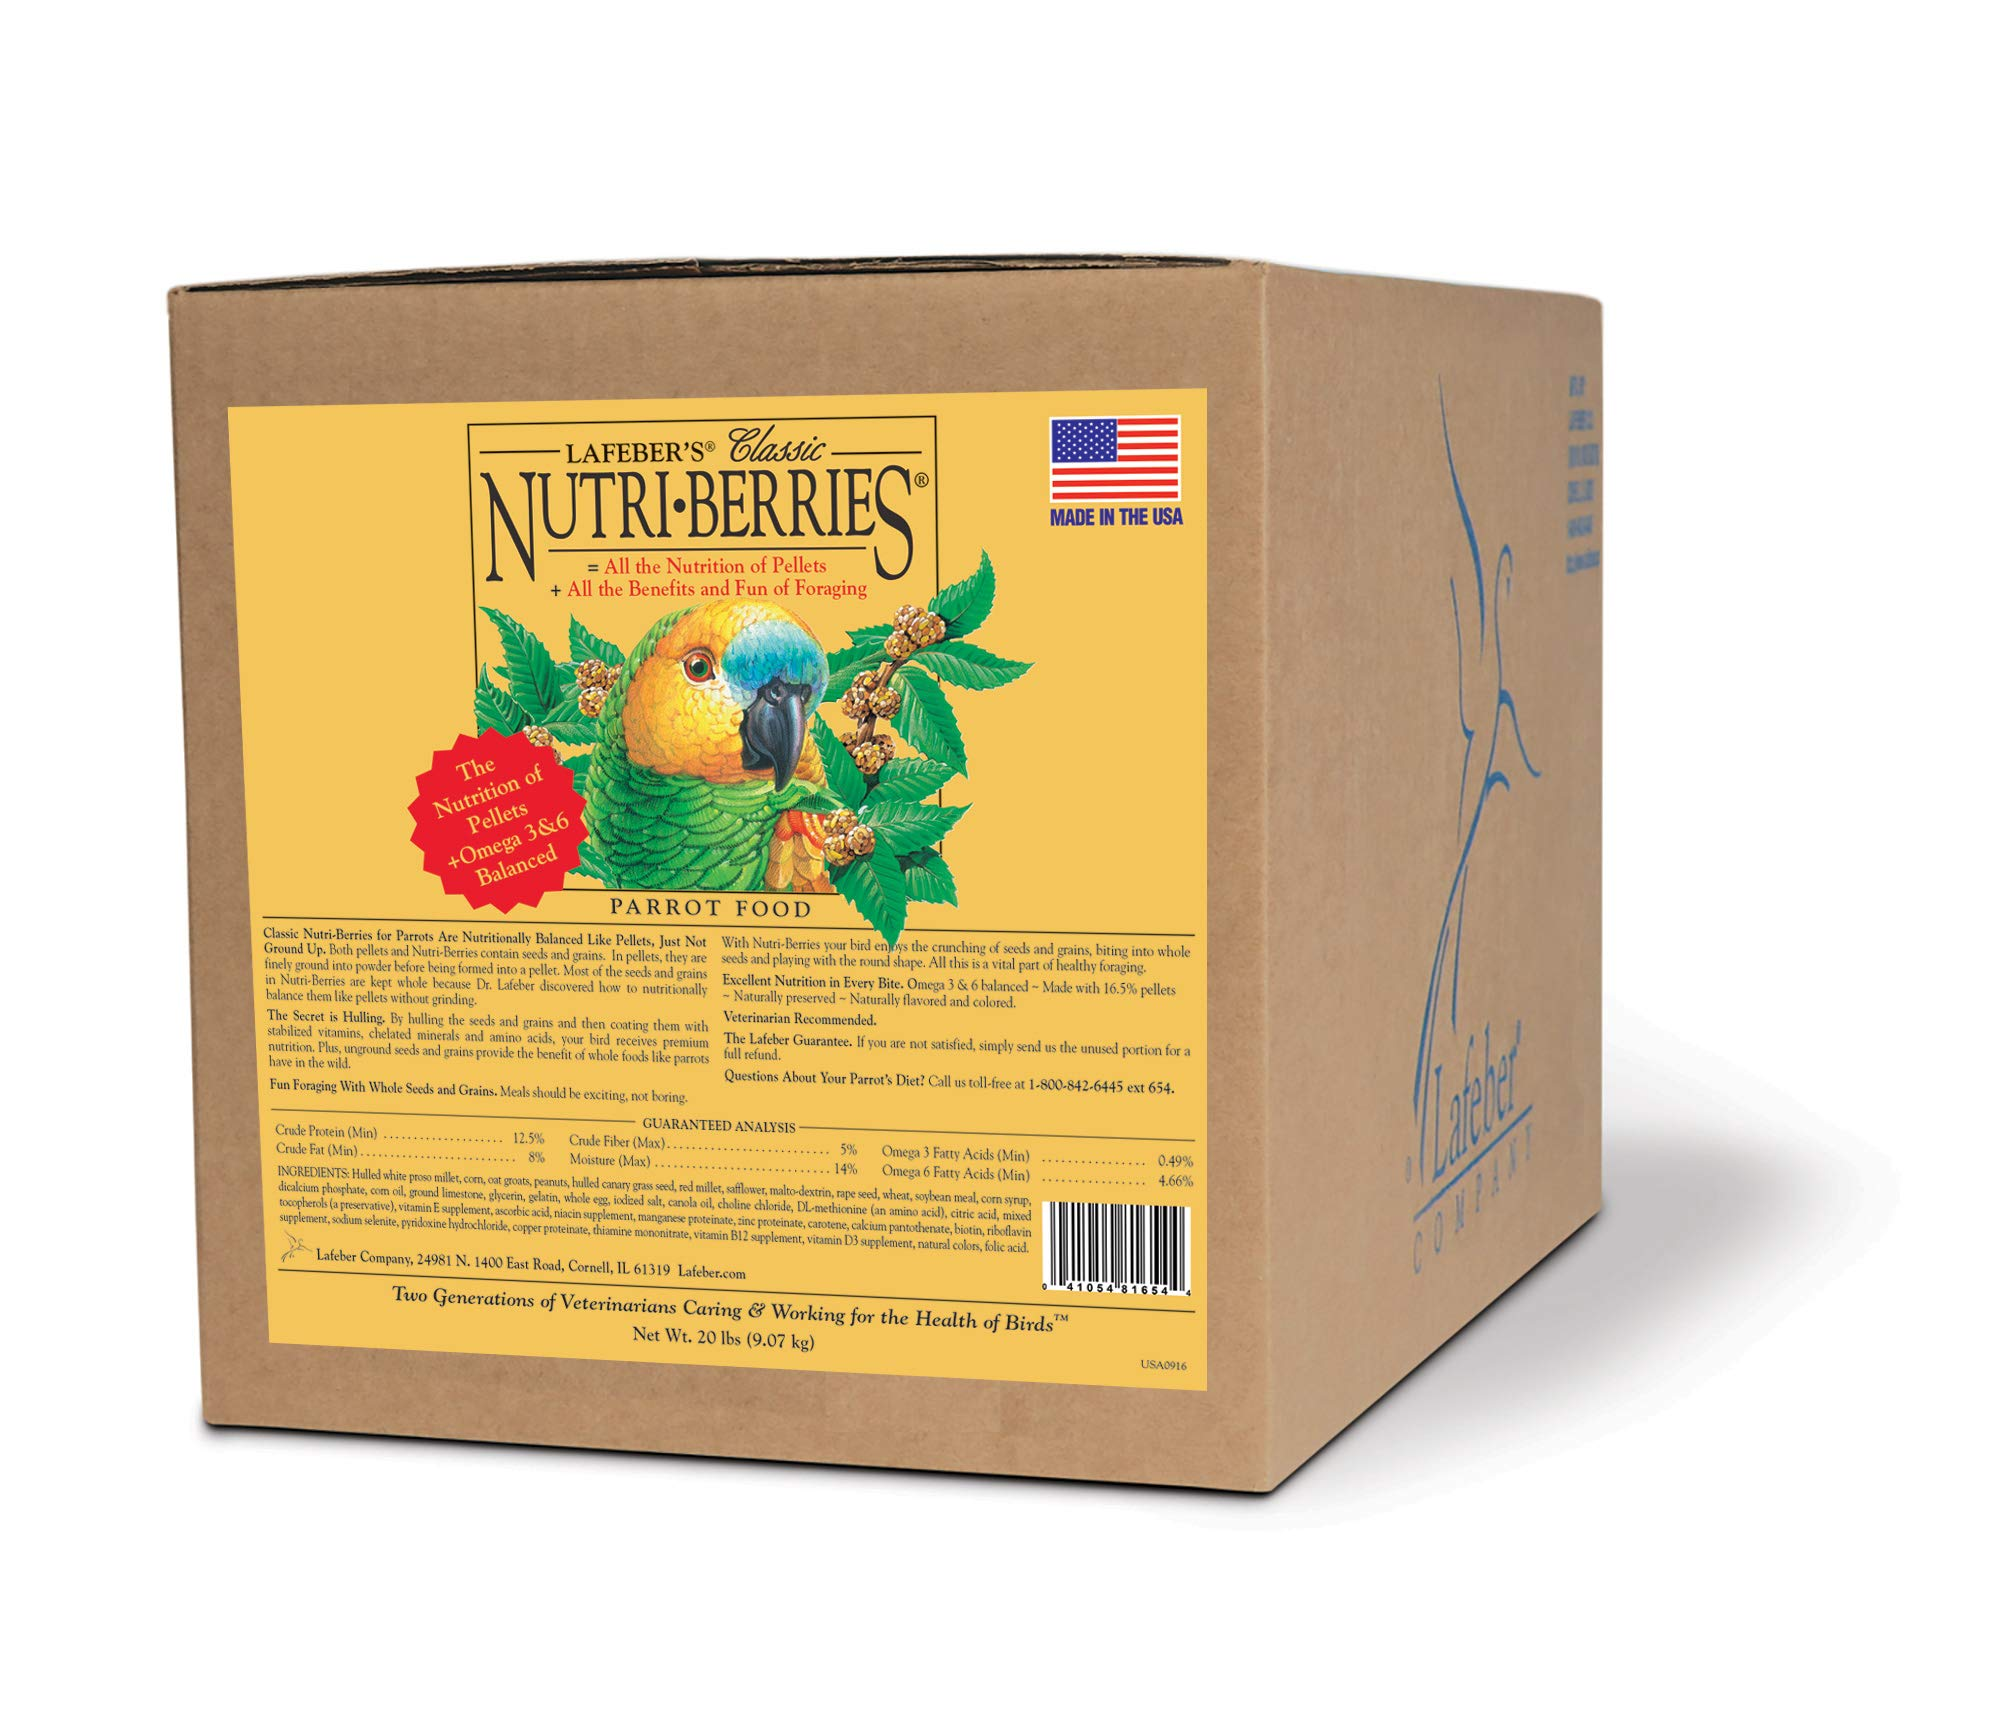 LAFEBER'S Classic Nutri-Berries Pet Bird Food, Made with Non-GMO and Human-Grade Ingredients, for Parrots, 20 lbs by LAFEBER'S